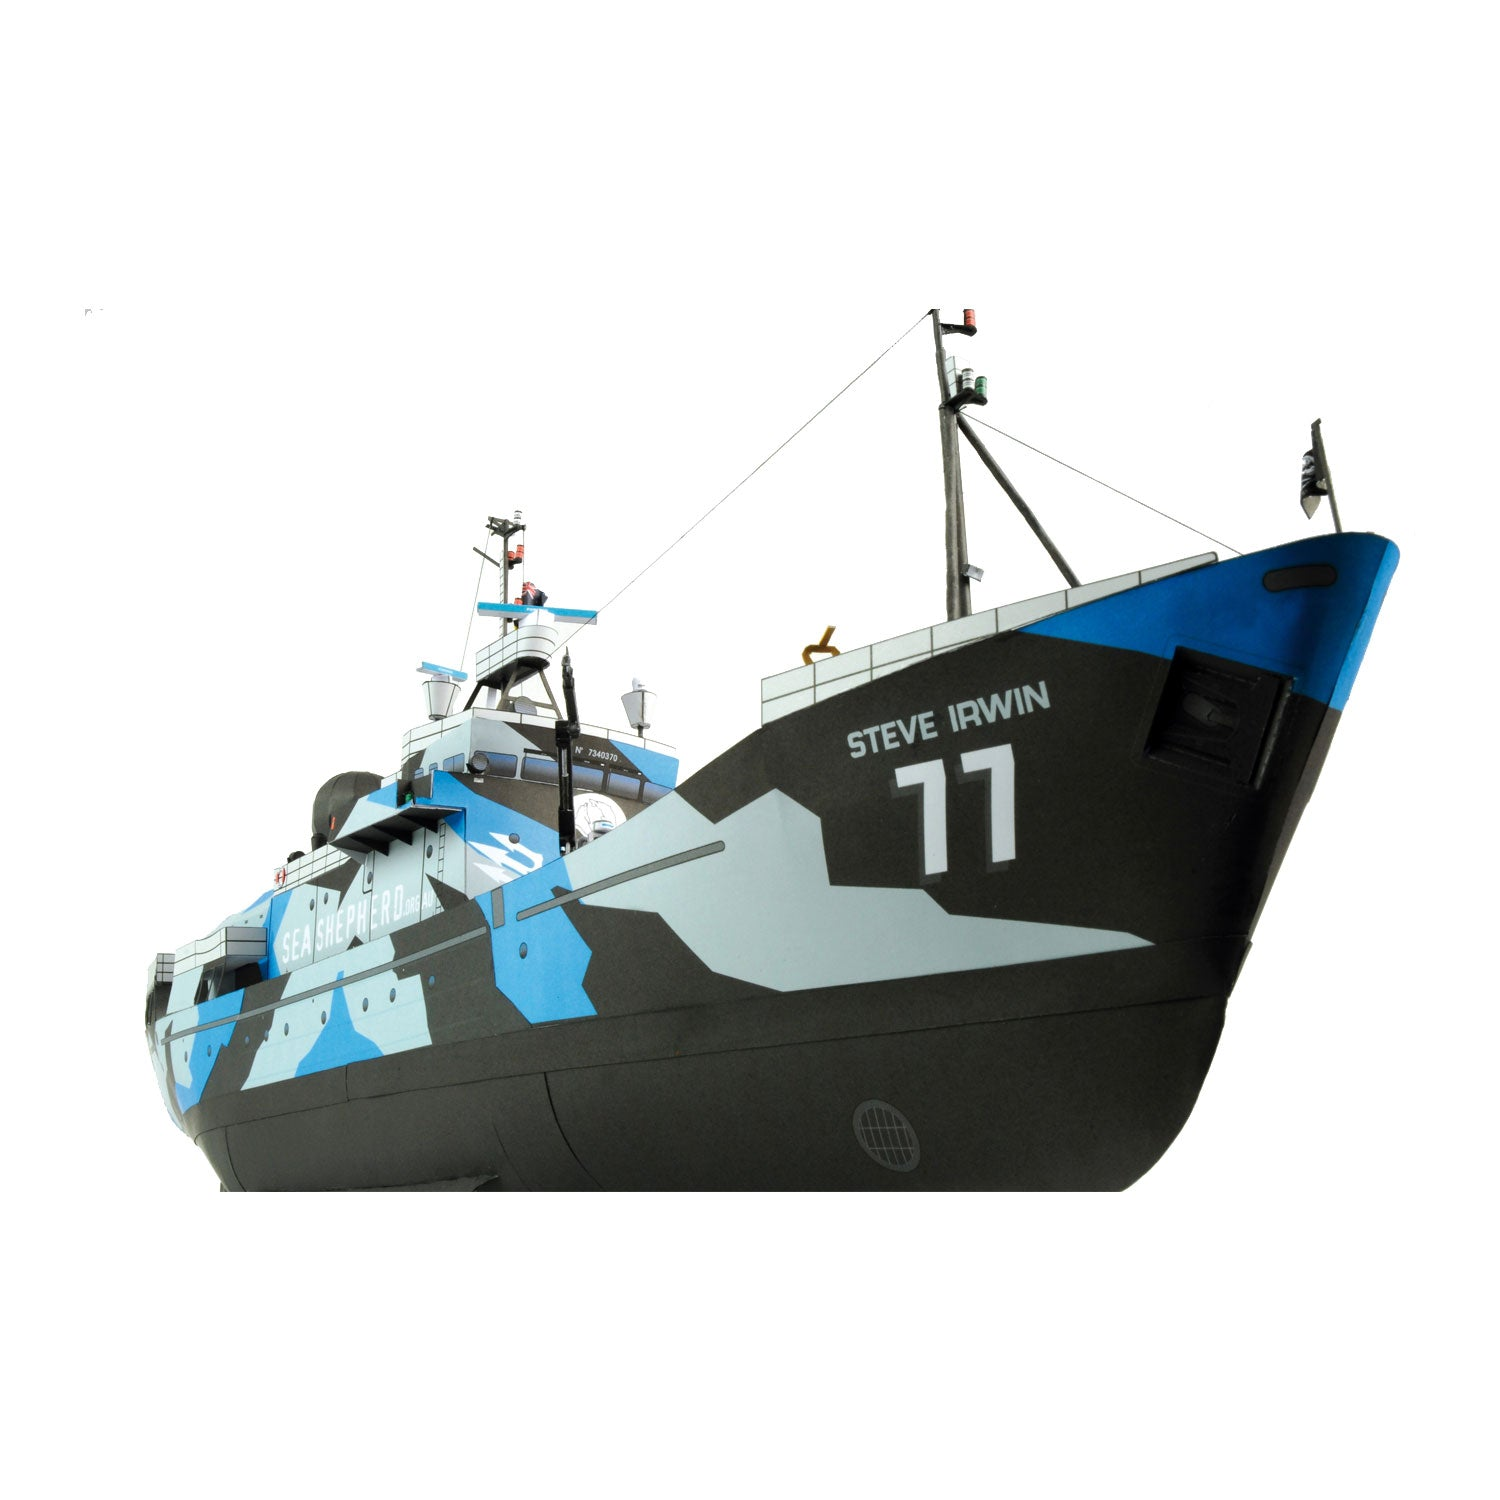 MV Steve Irwin Model